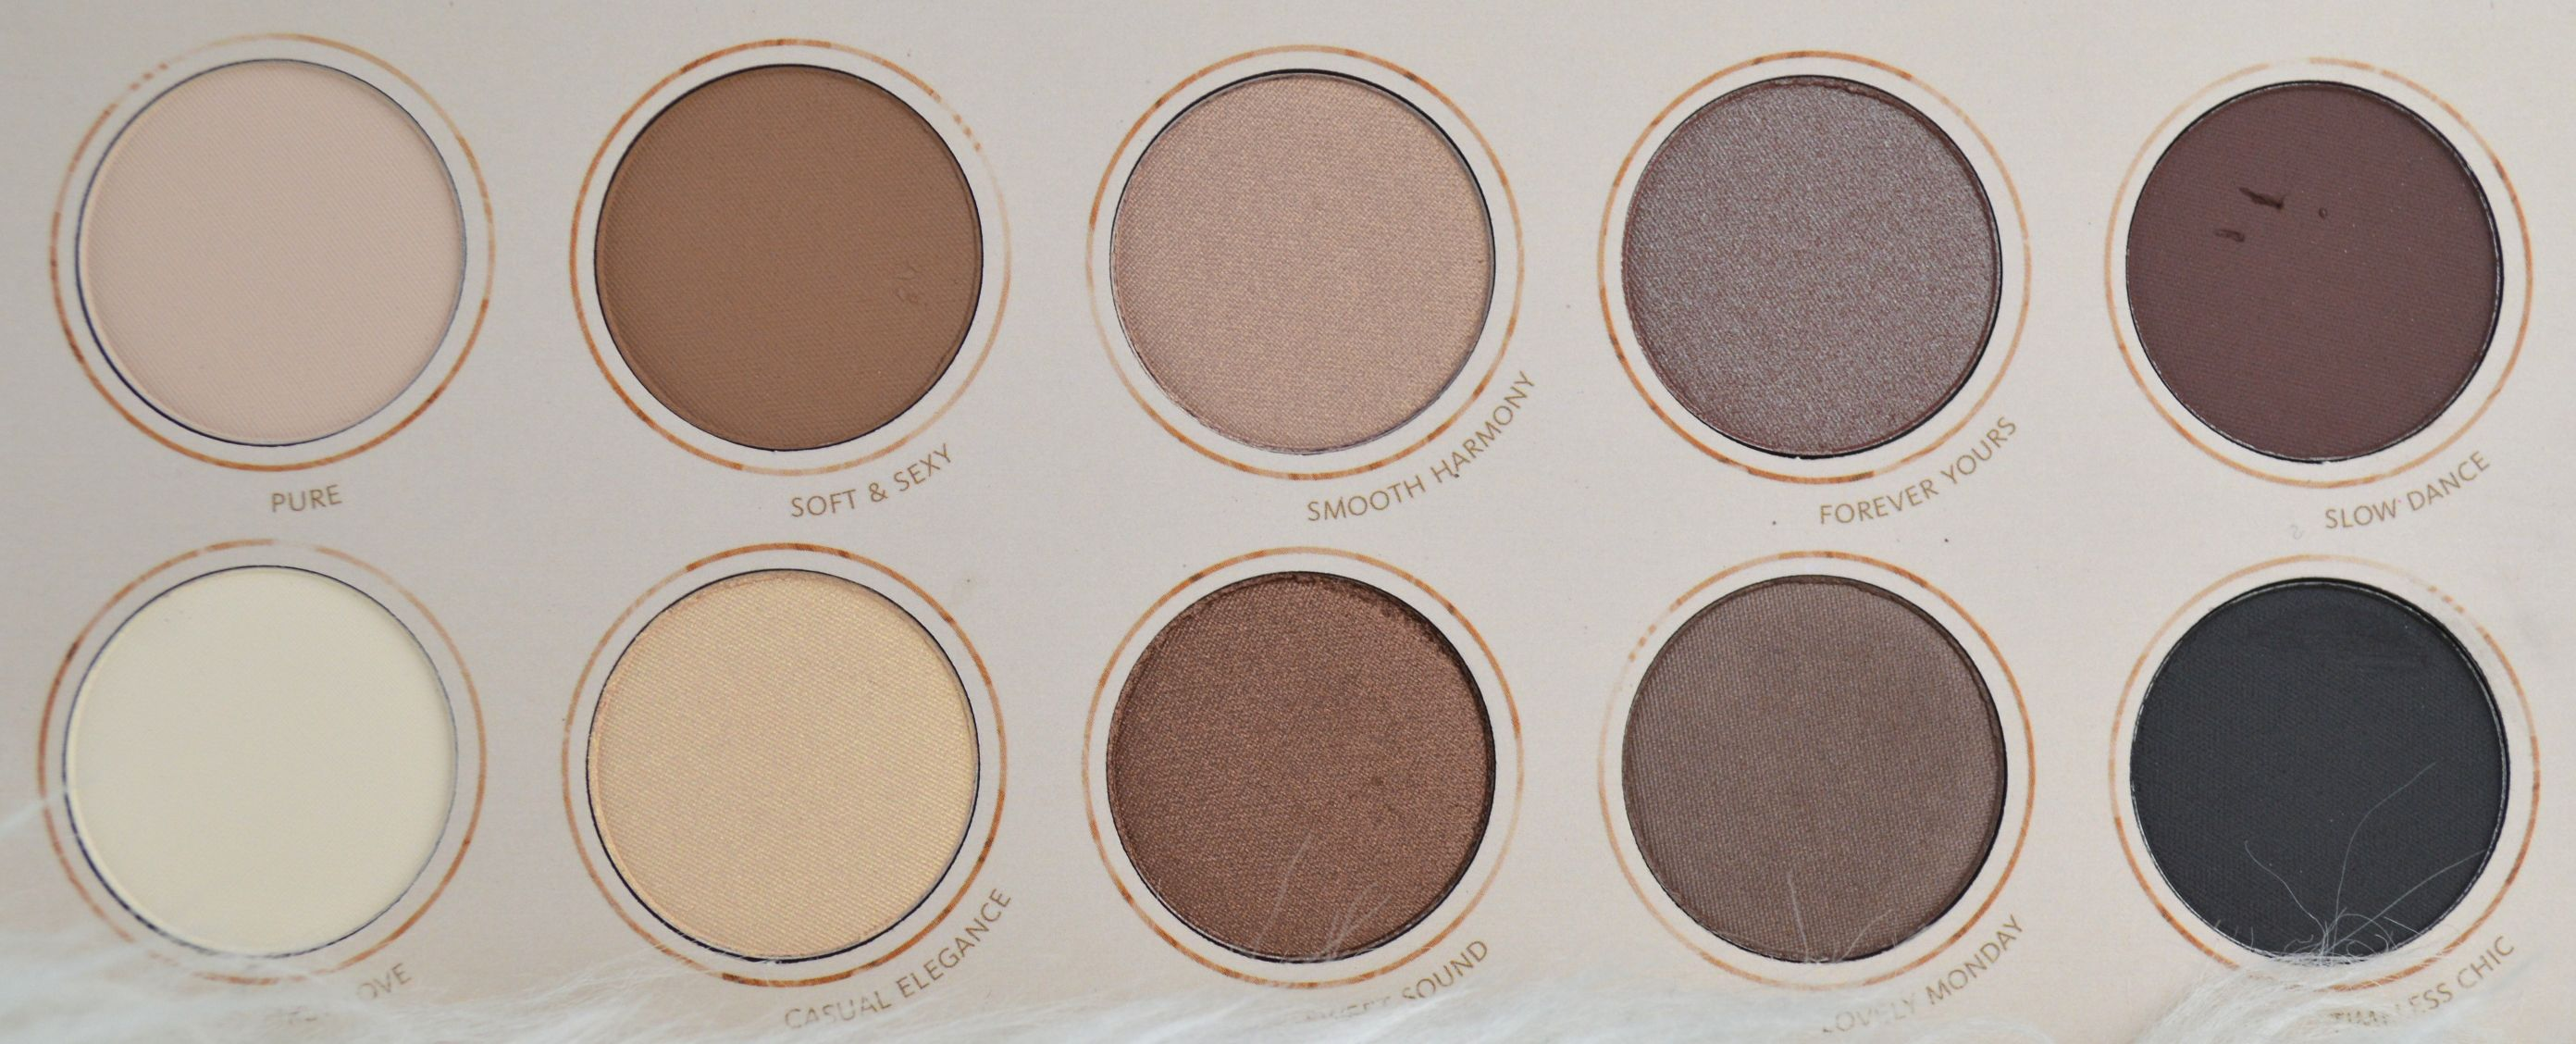 zoeva_naturally_yours_palette_review_mikalicious